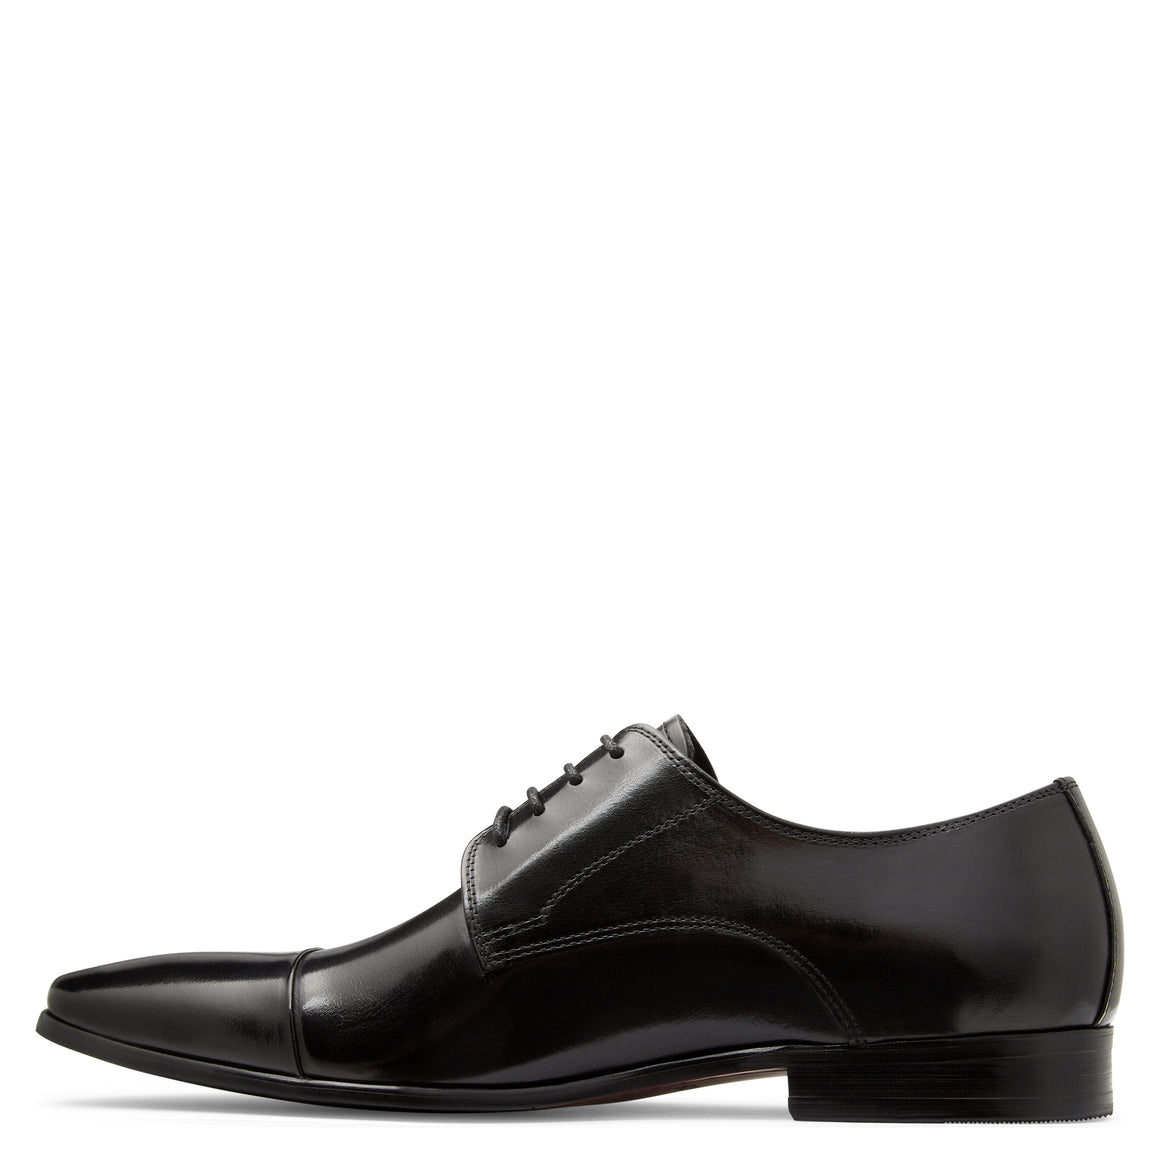 Steven Black Derby Shoes